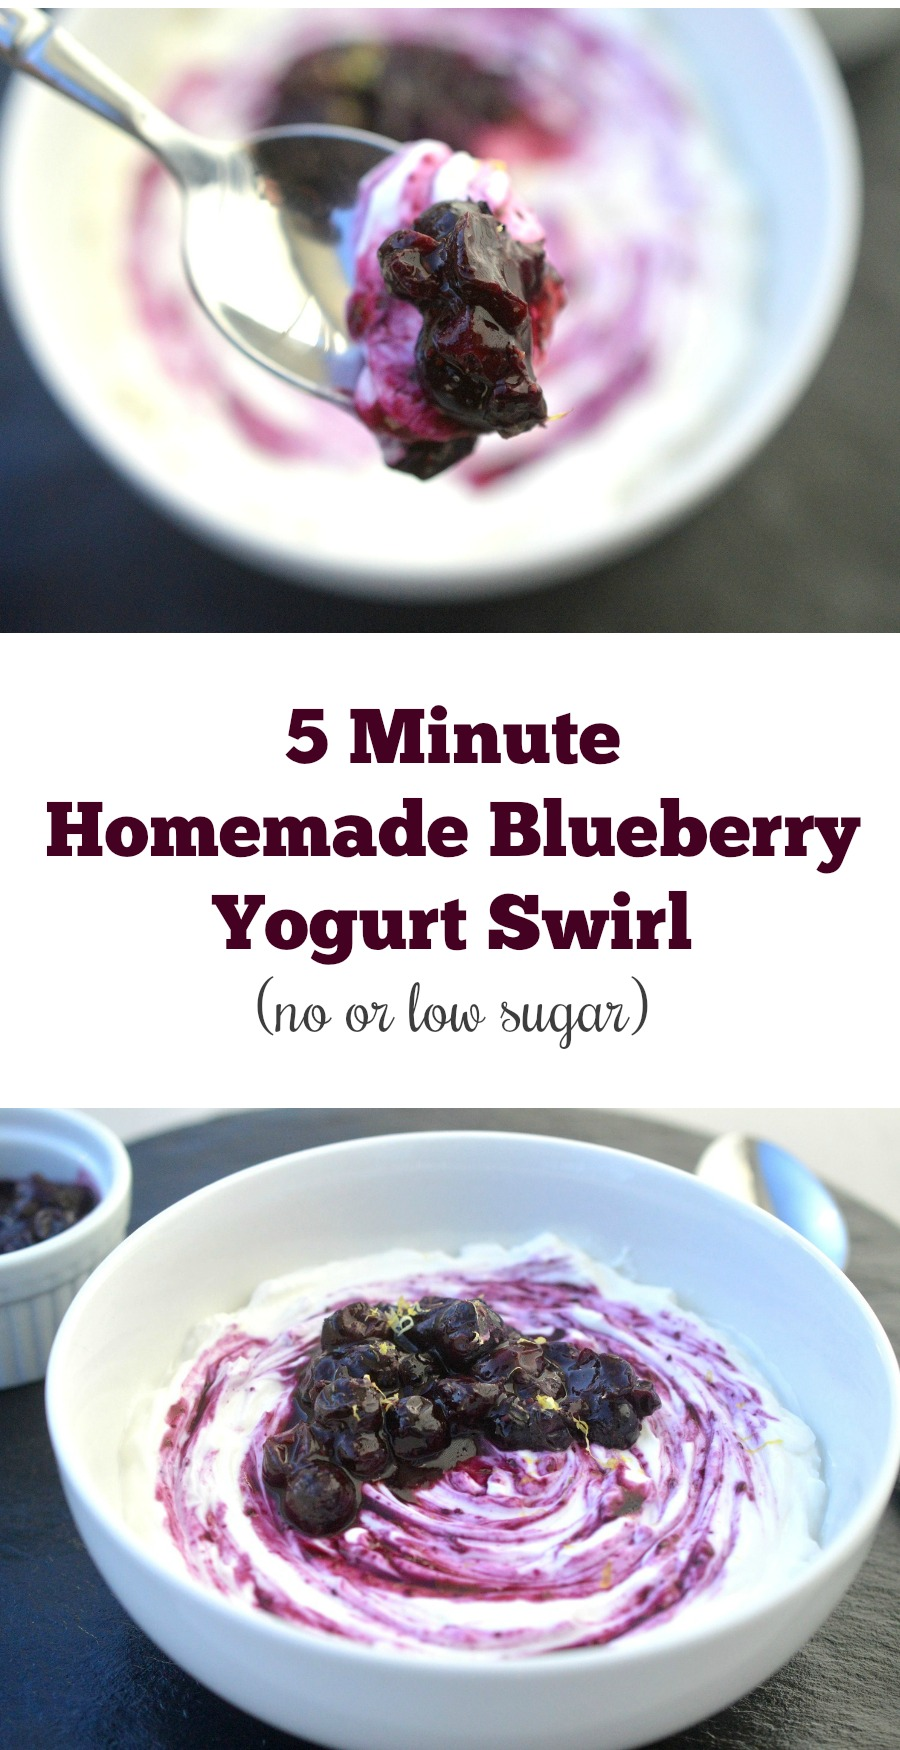 5 Minute Homemade Blueberry Yogurt Swirl